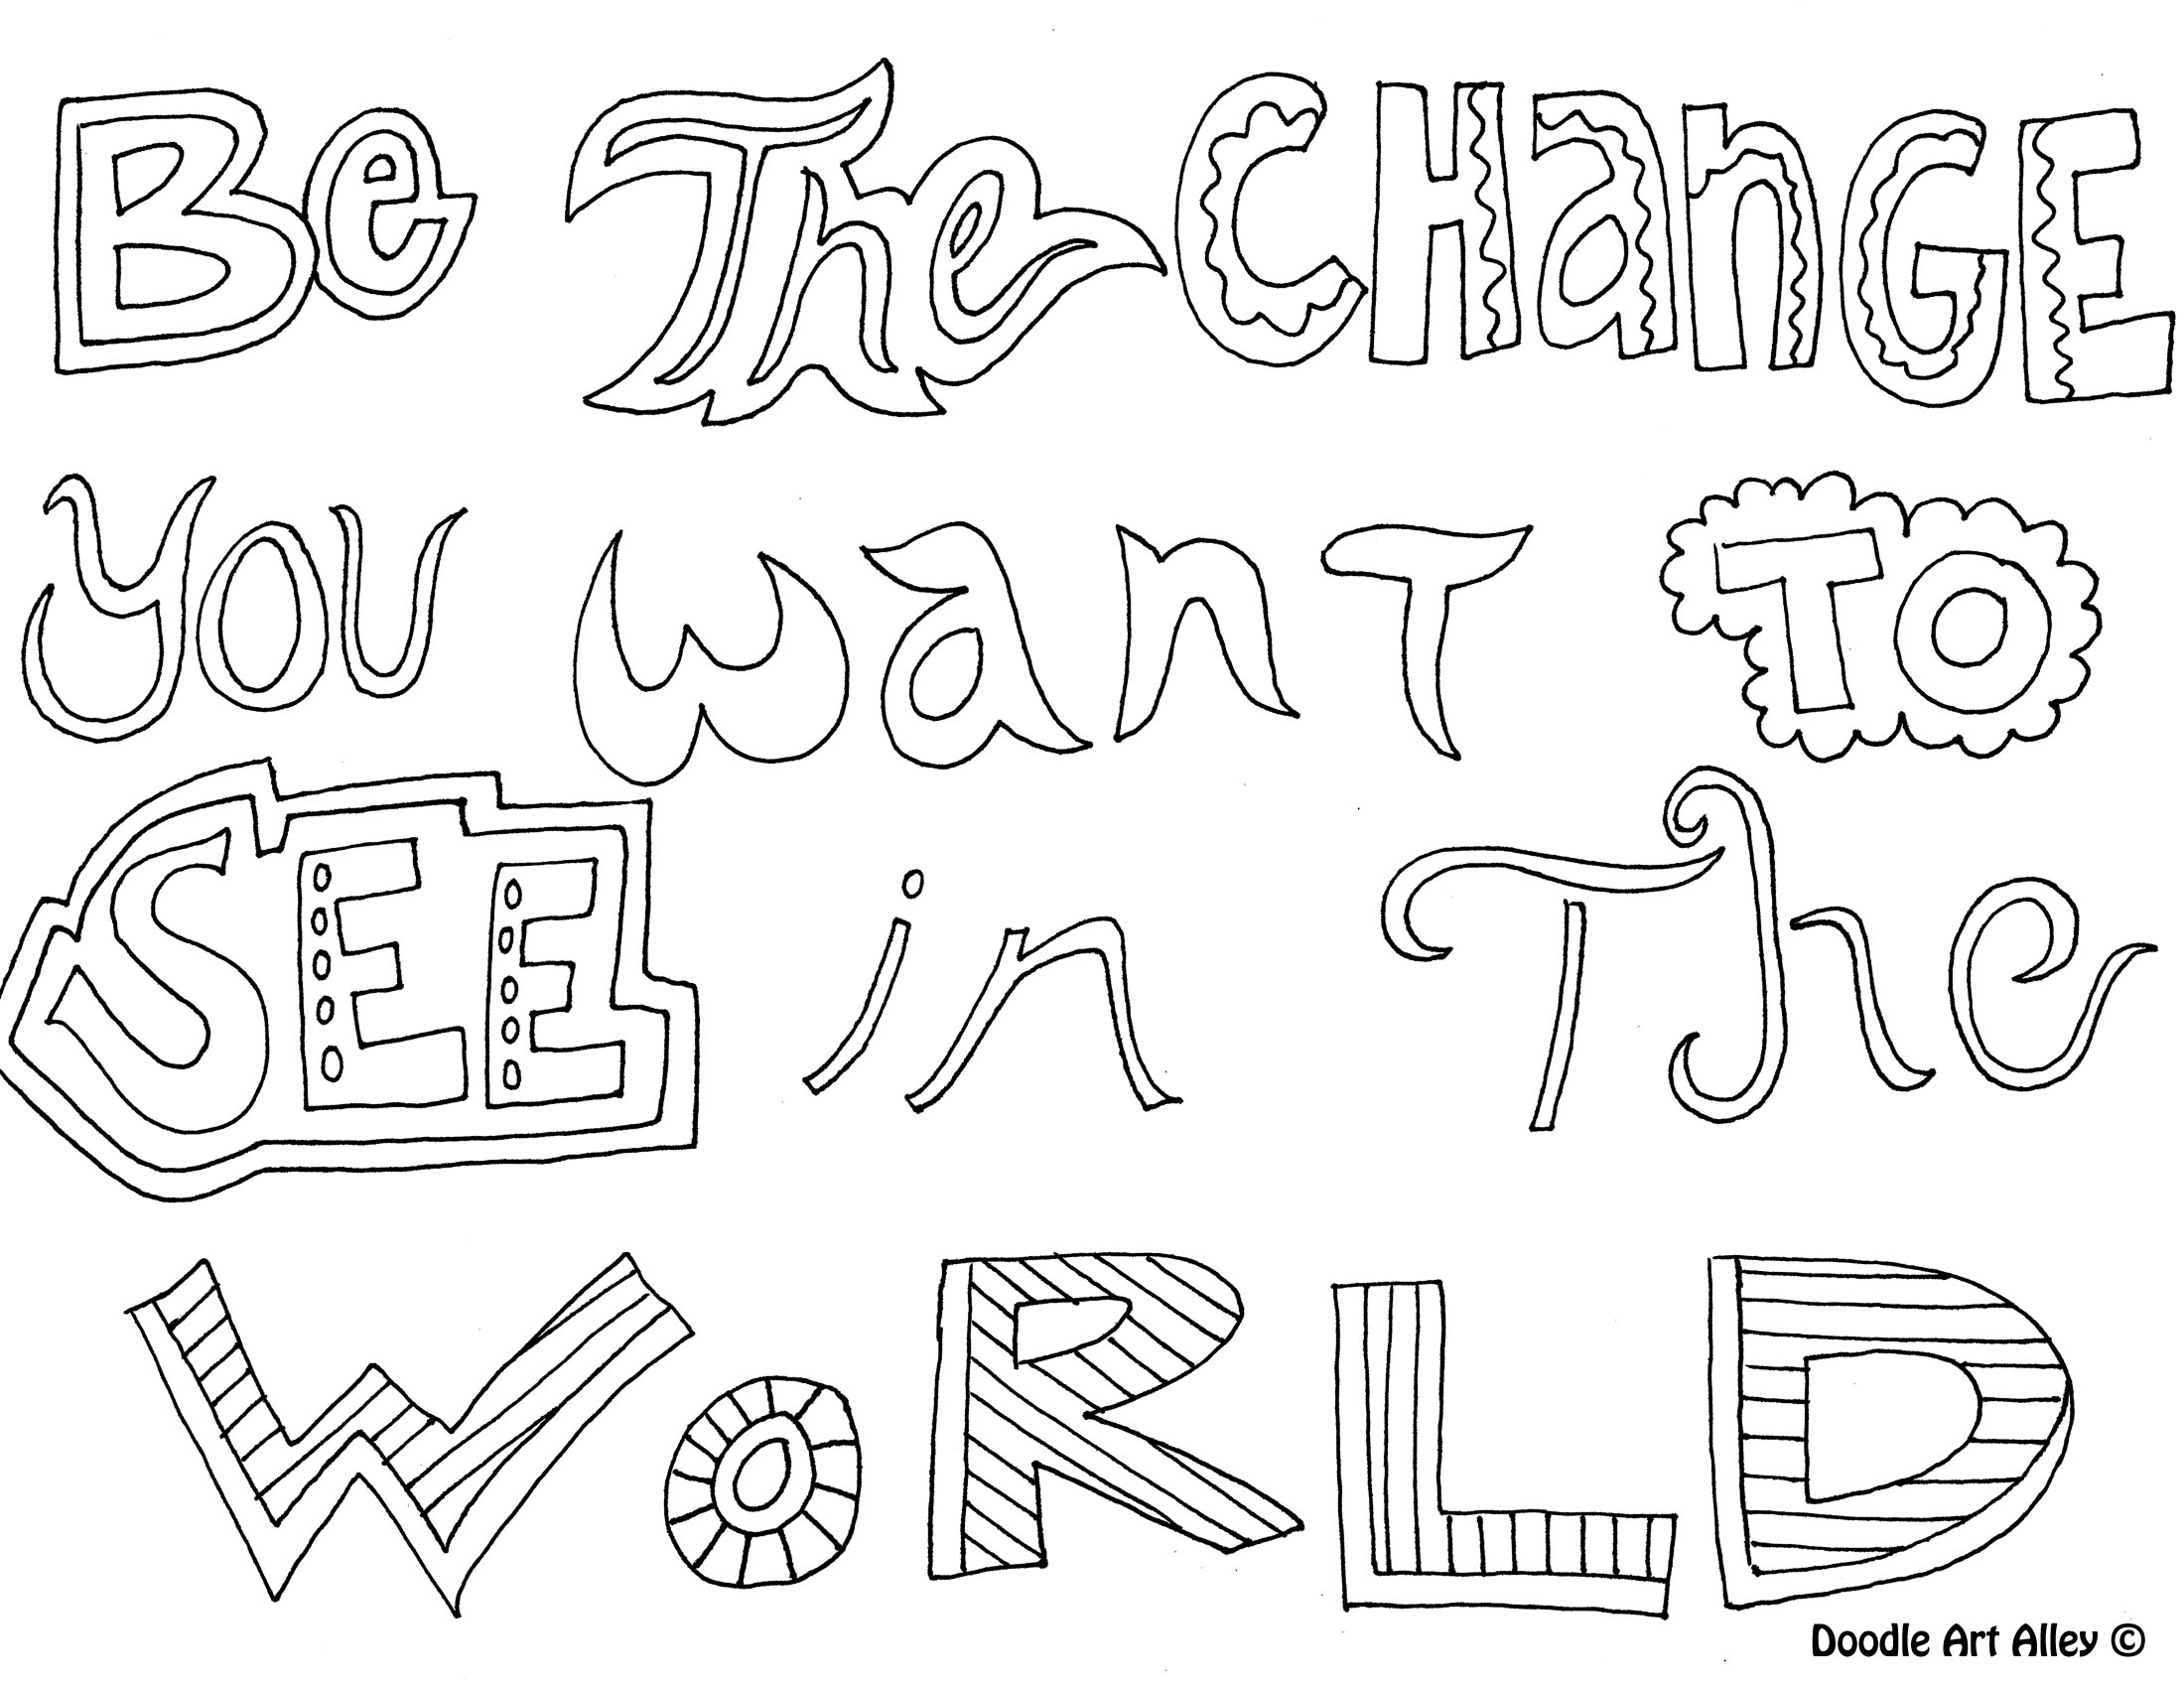 2200x1700 Love Quotes Coloring Pages For Teenagers Printable Beatiful Image